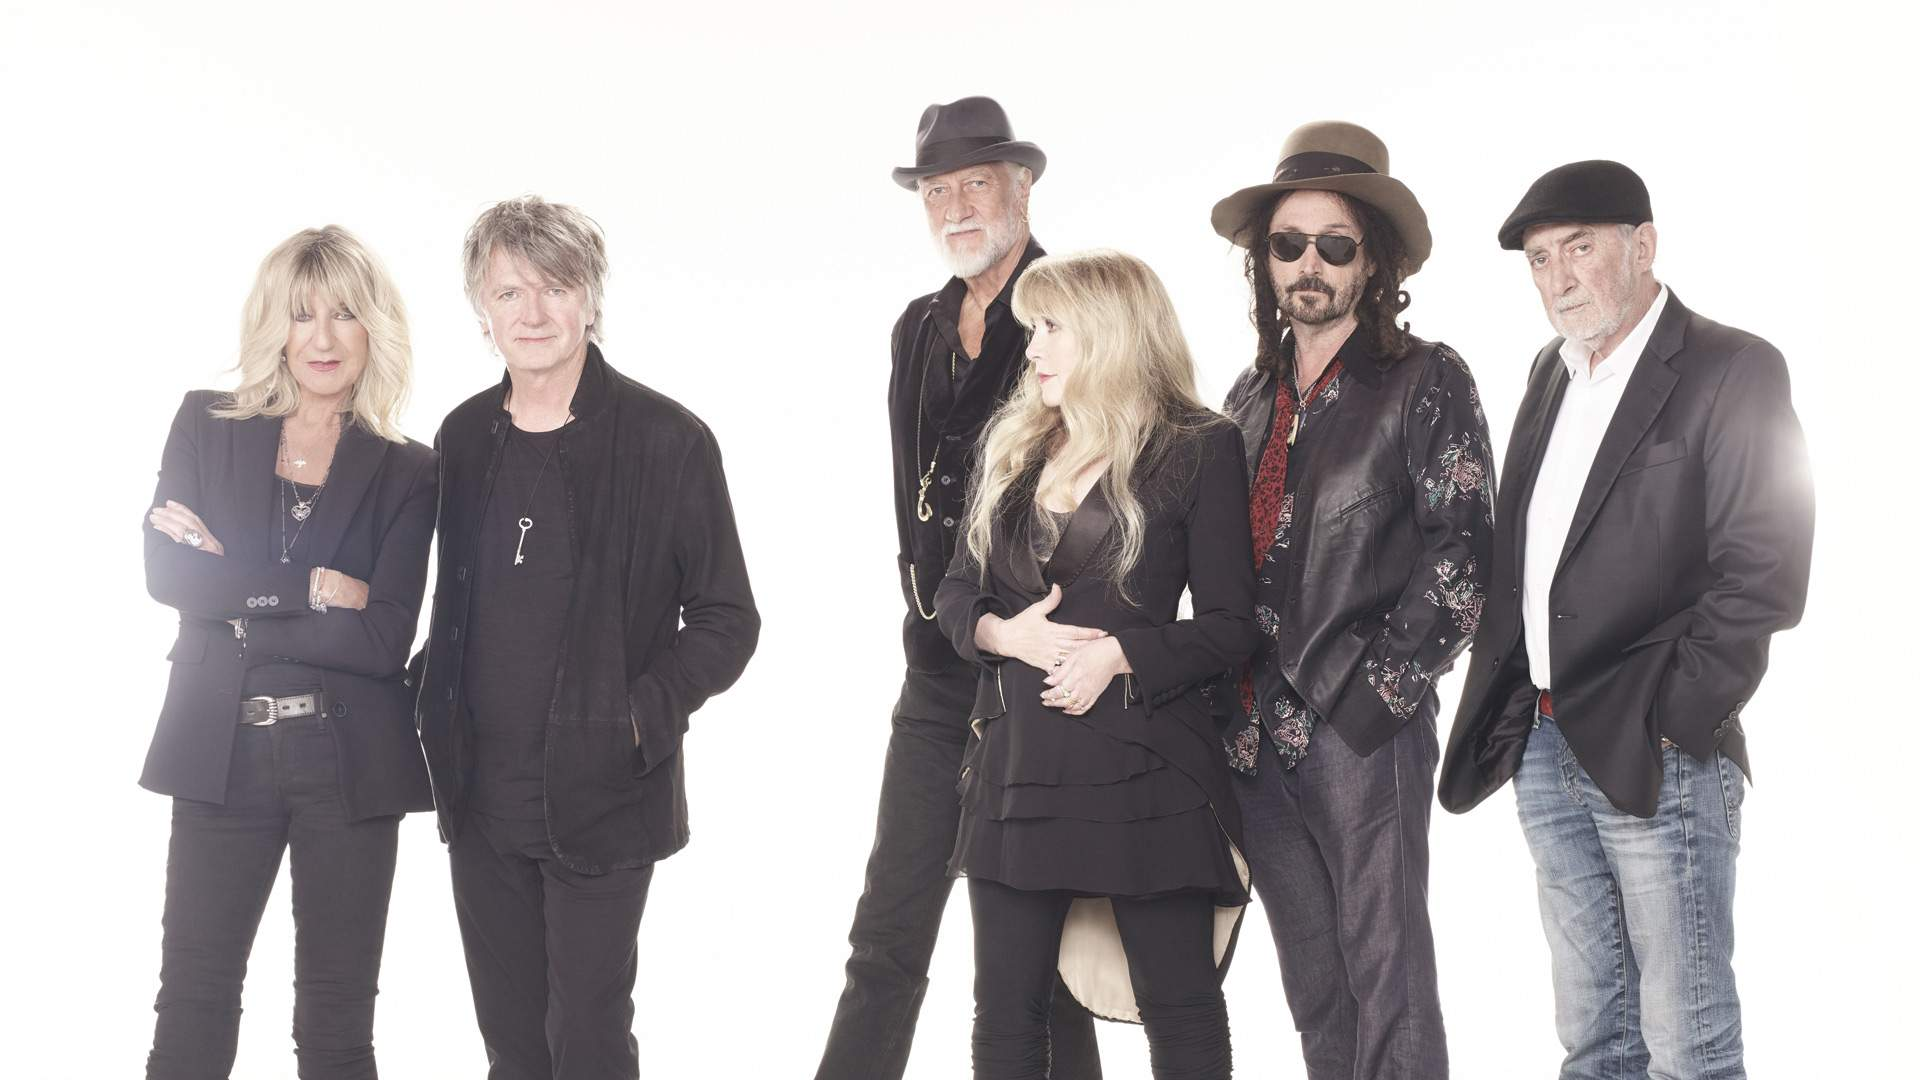 Legendary Rock Band Fleetwood Mac Is Touring New Zealand in 2019